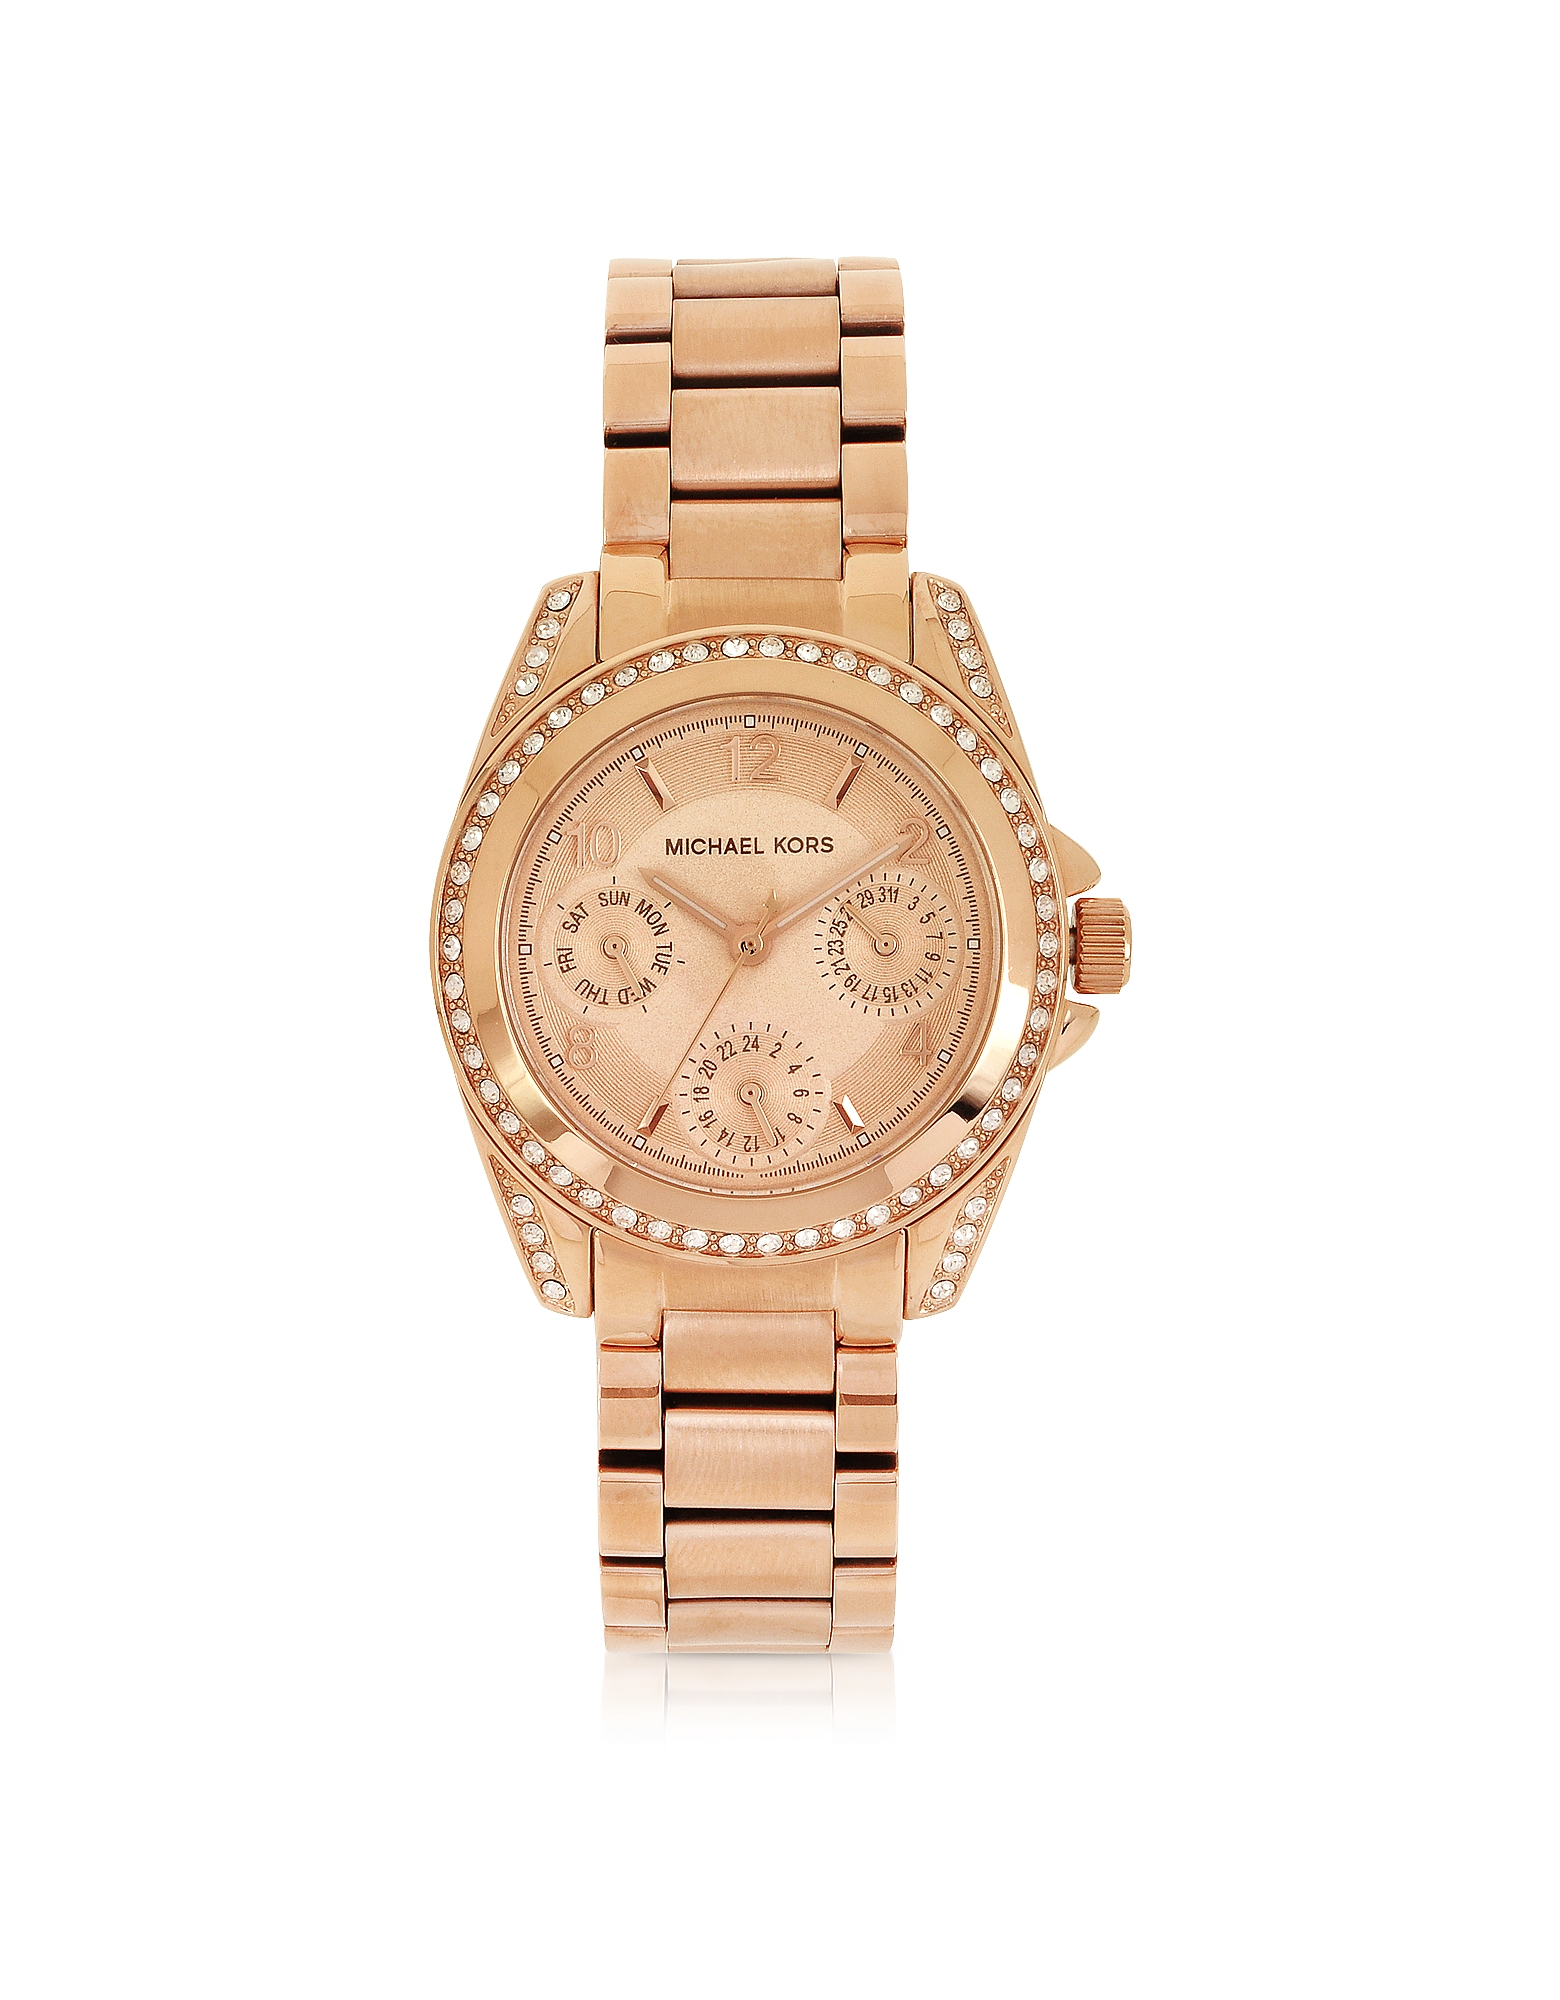 Michael Kors  Women's Watches Rose Golden Mini-Size Blair Multi-Function Glitz Watch